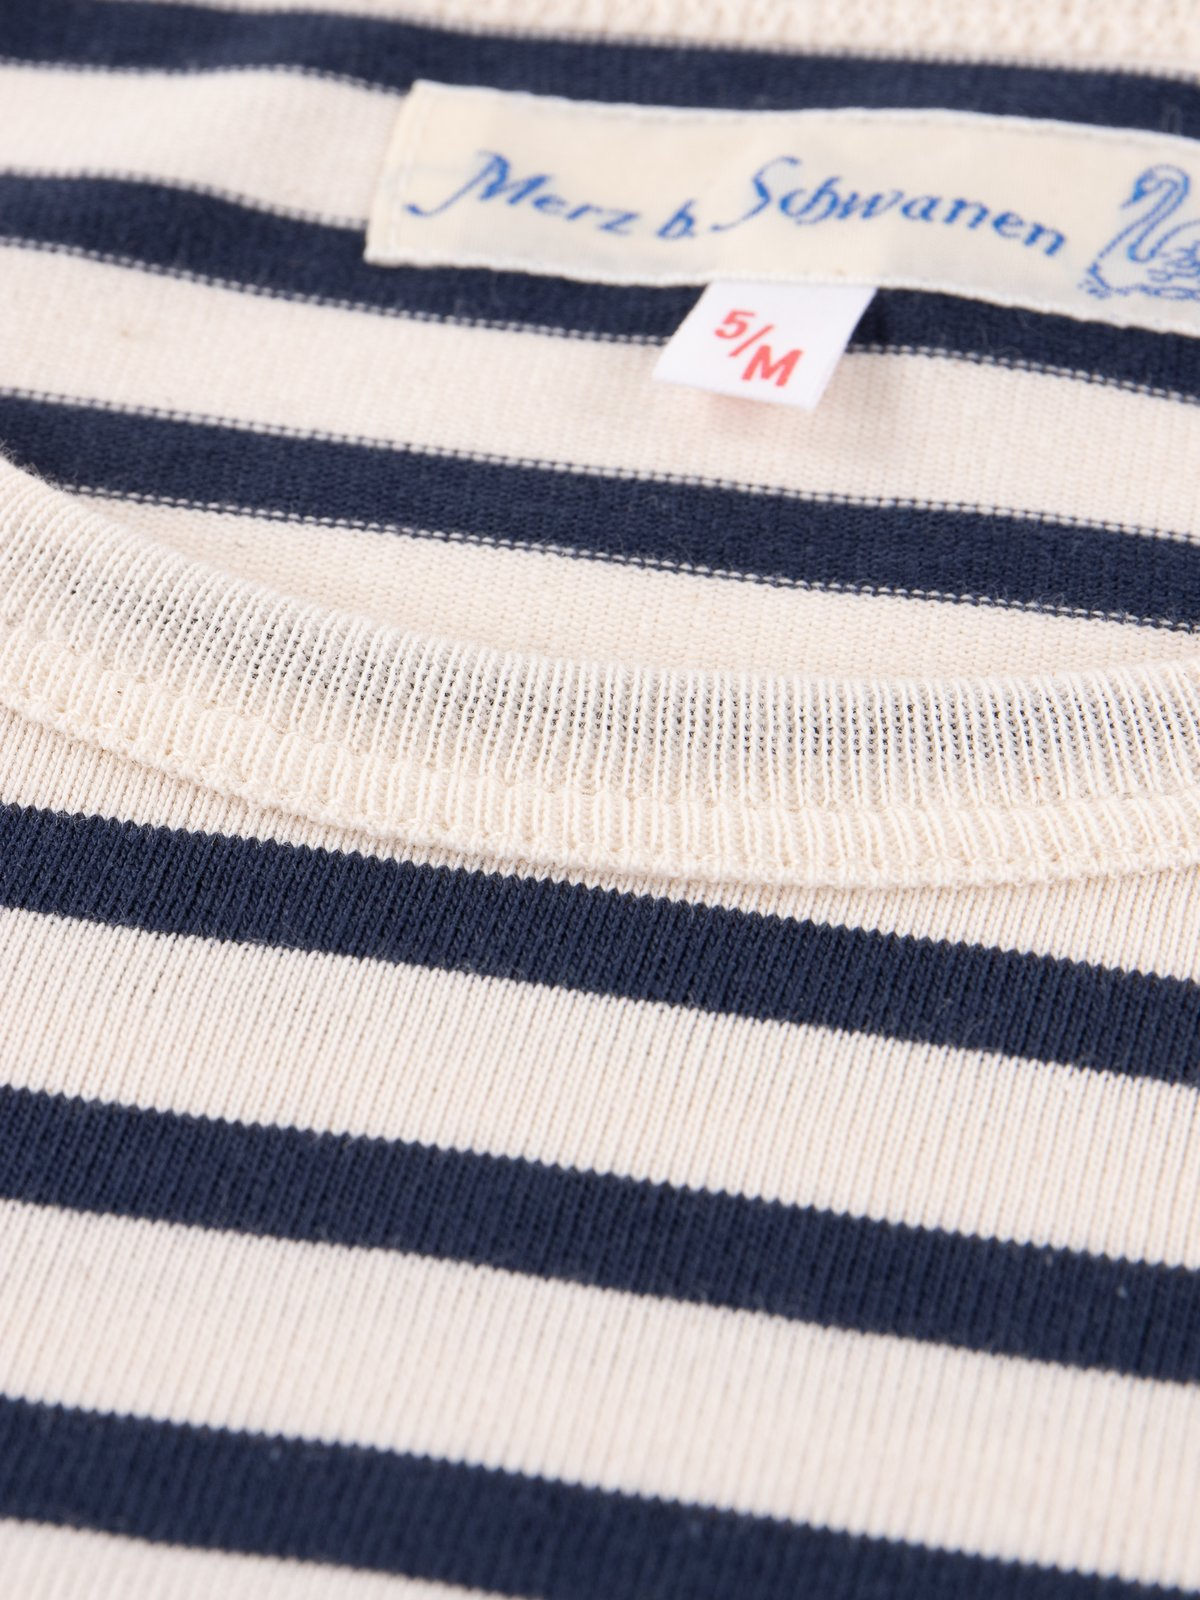 Ink/Natural Stripe 2M12 Crew Neck Long Sleeve Tee - Image 4